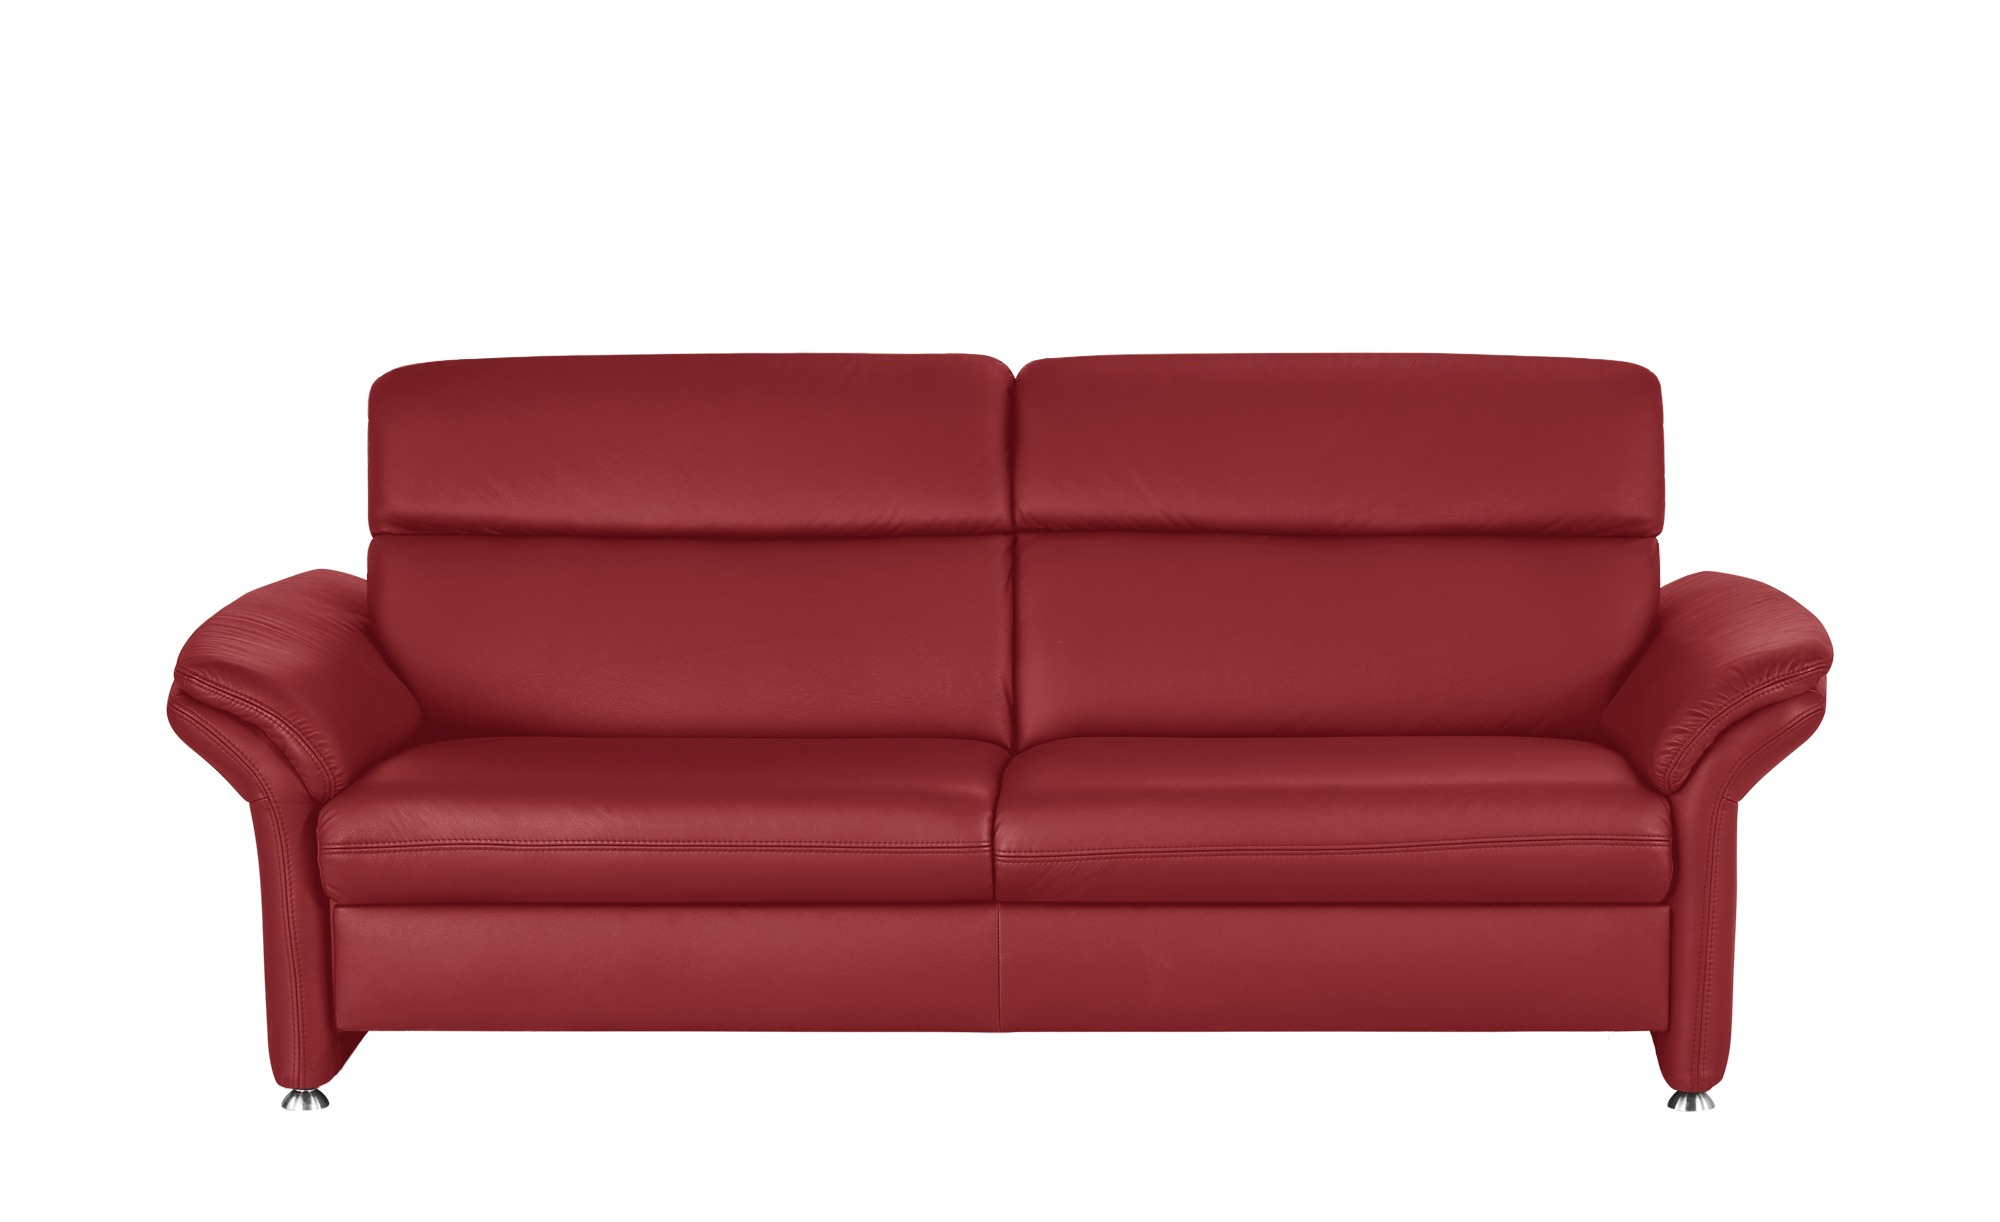 meinsofa ledersofa manon breite 228 cm h he 94 cm rot. Black Bedroom Furniture Sets. Home Design Ideas